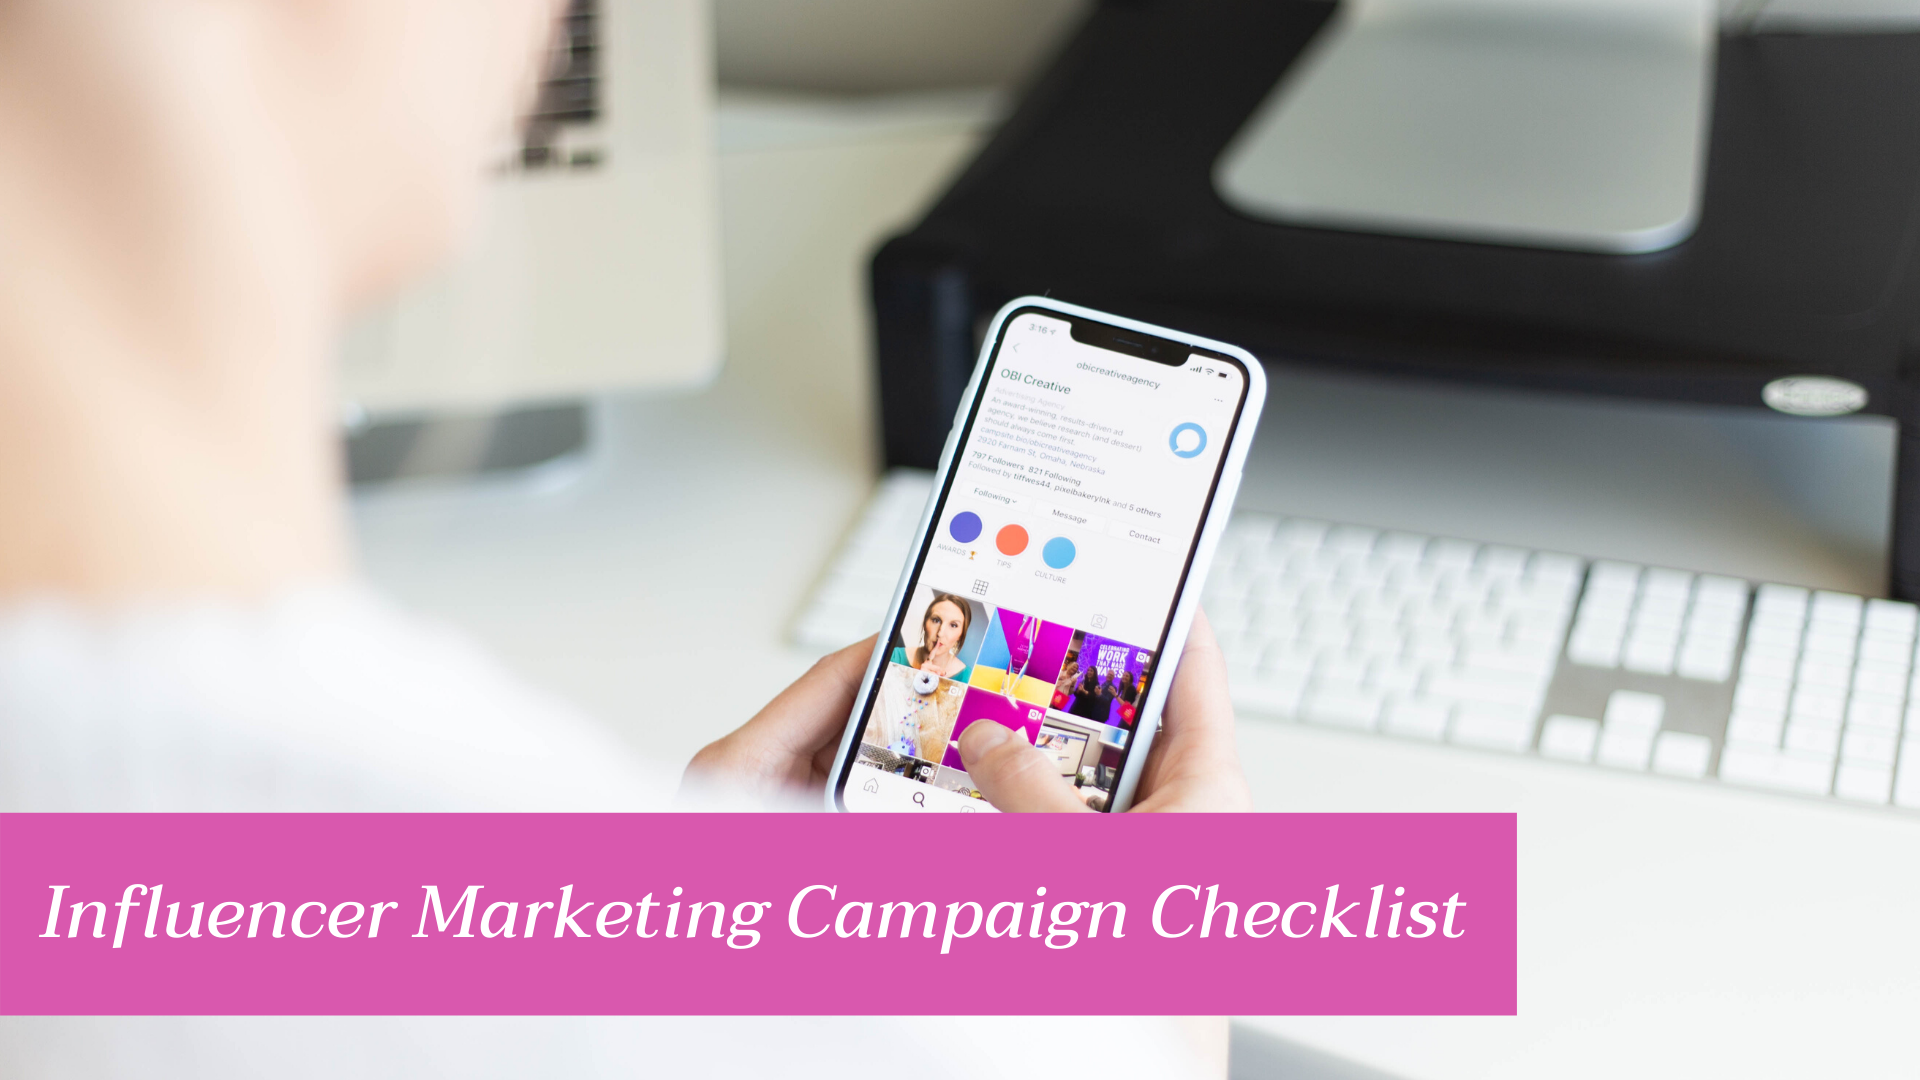 Influencer Marketing Campaign Checklist